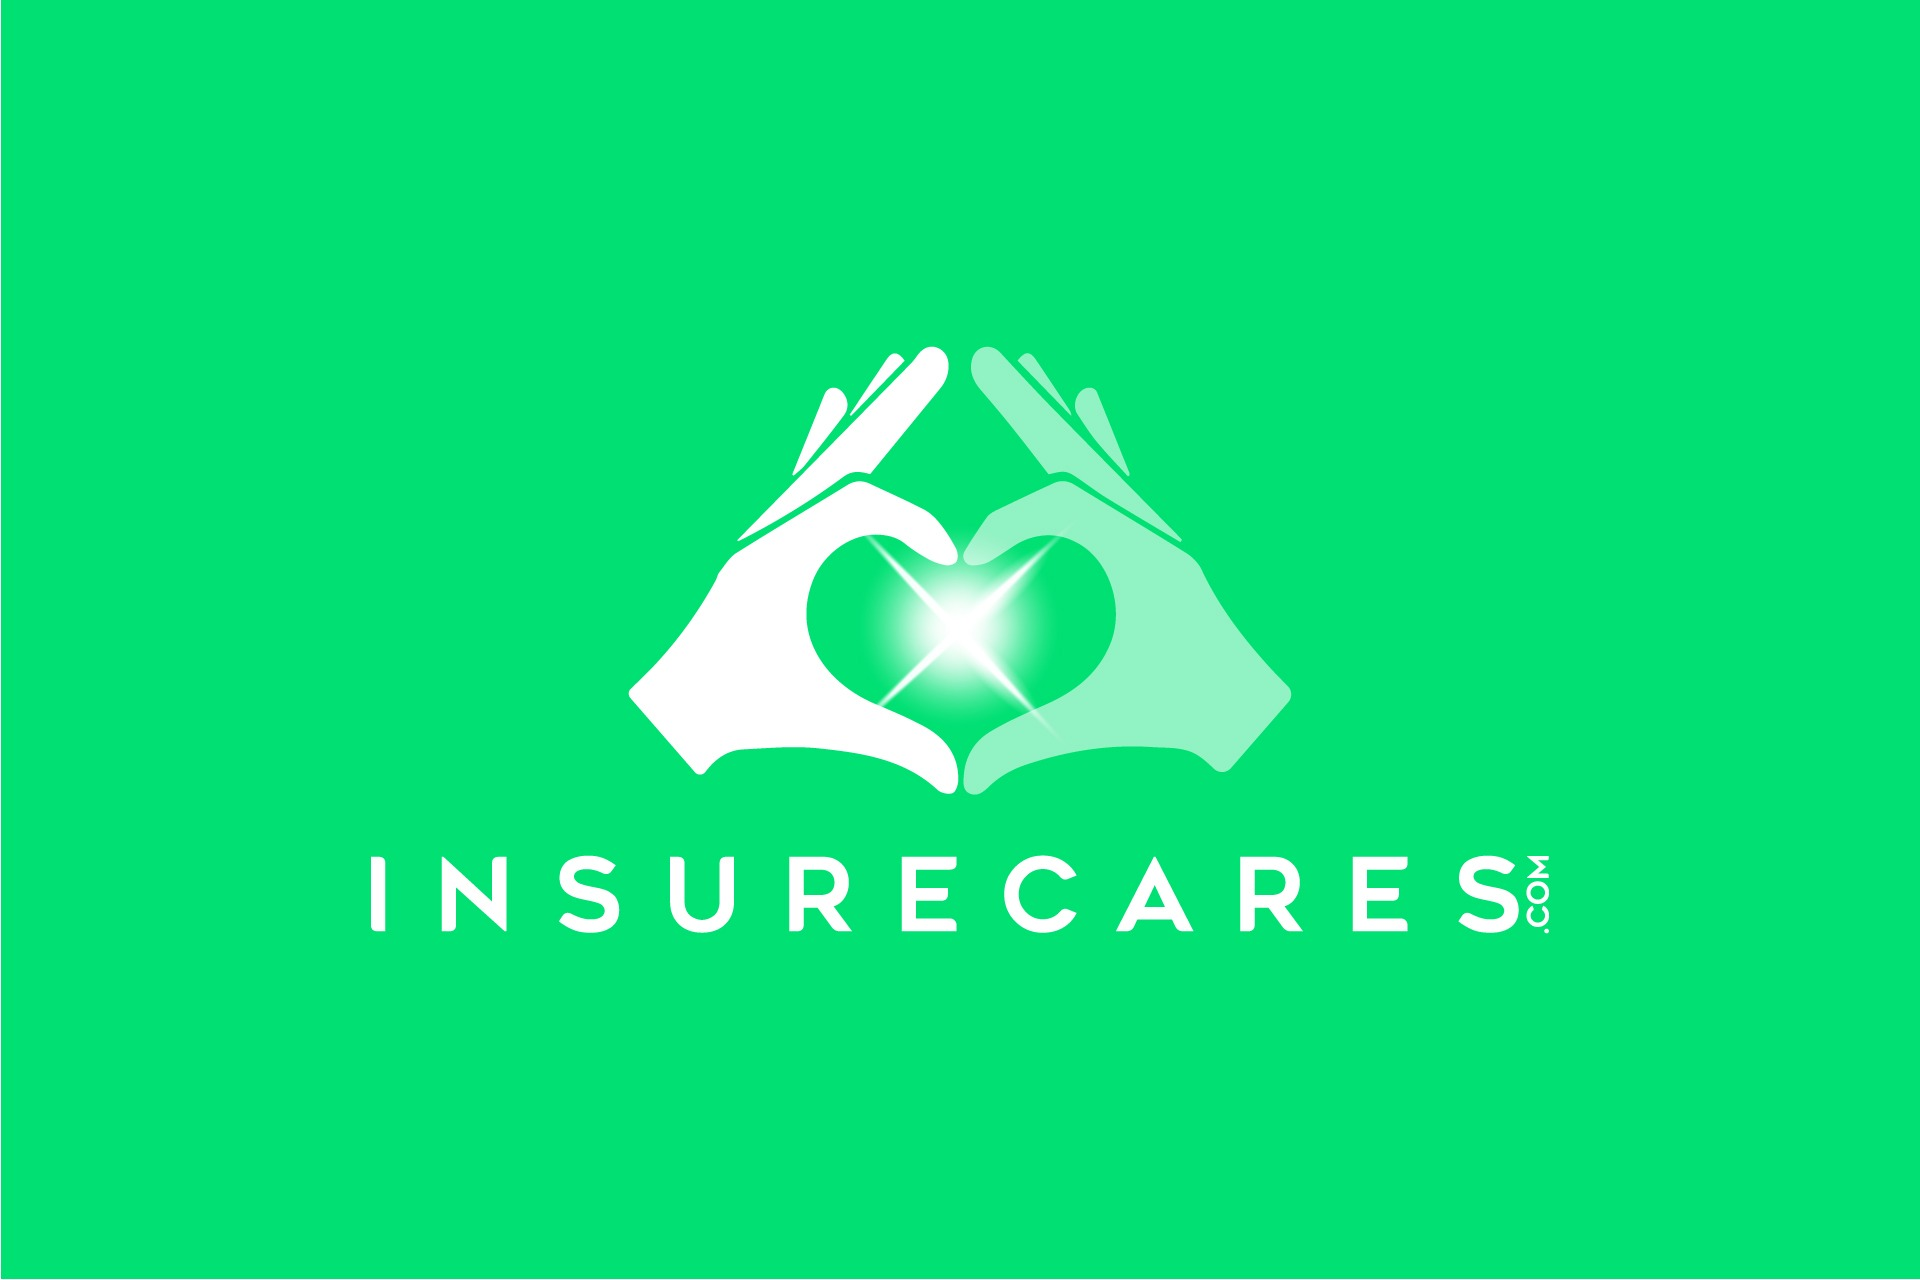 InsureCares.com